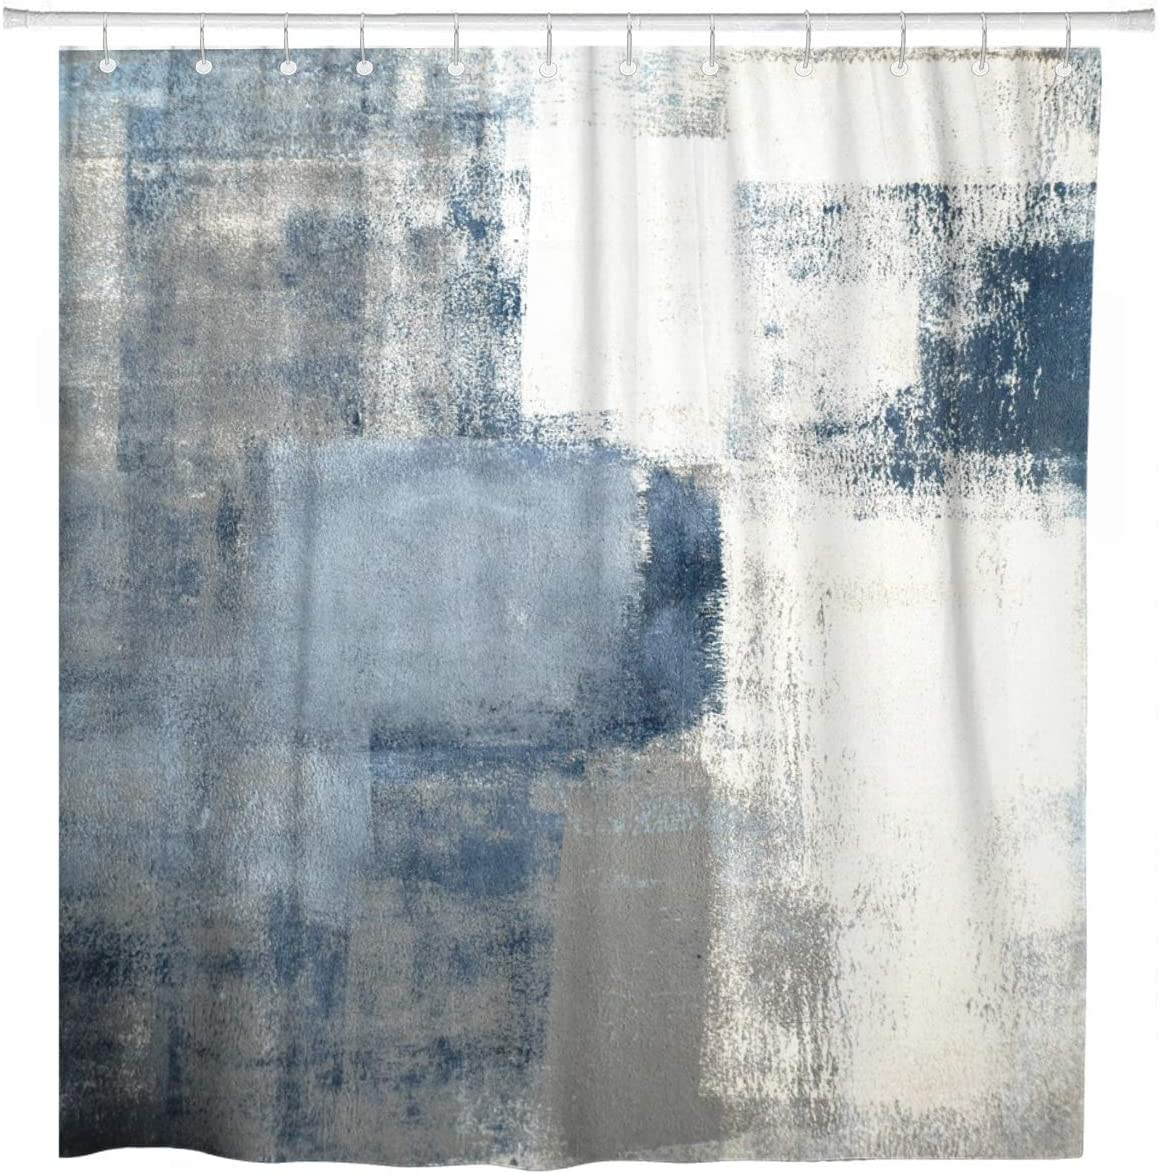 ArtSocket Shower Curtain Gray Contemporary Blue and Grey Abstract Painting Home Bathroom Decor Polyester Fabric Waterproof 72 x 72 Inches Set with Hooks